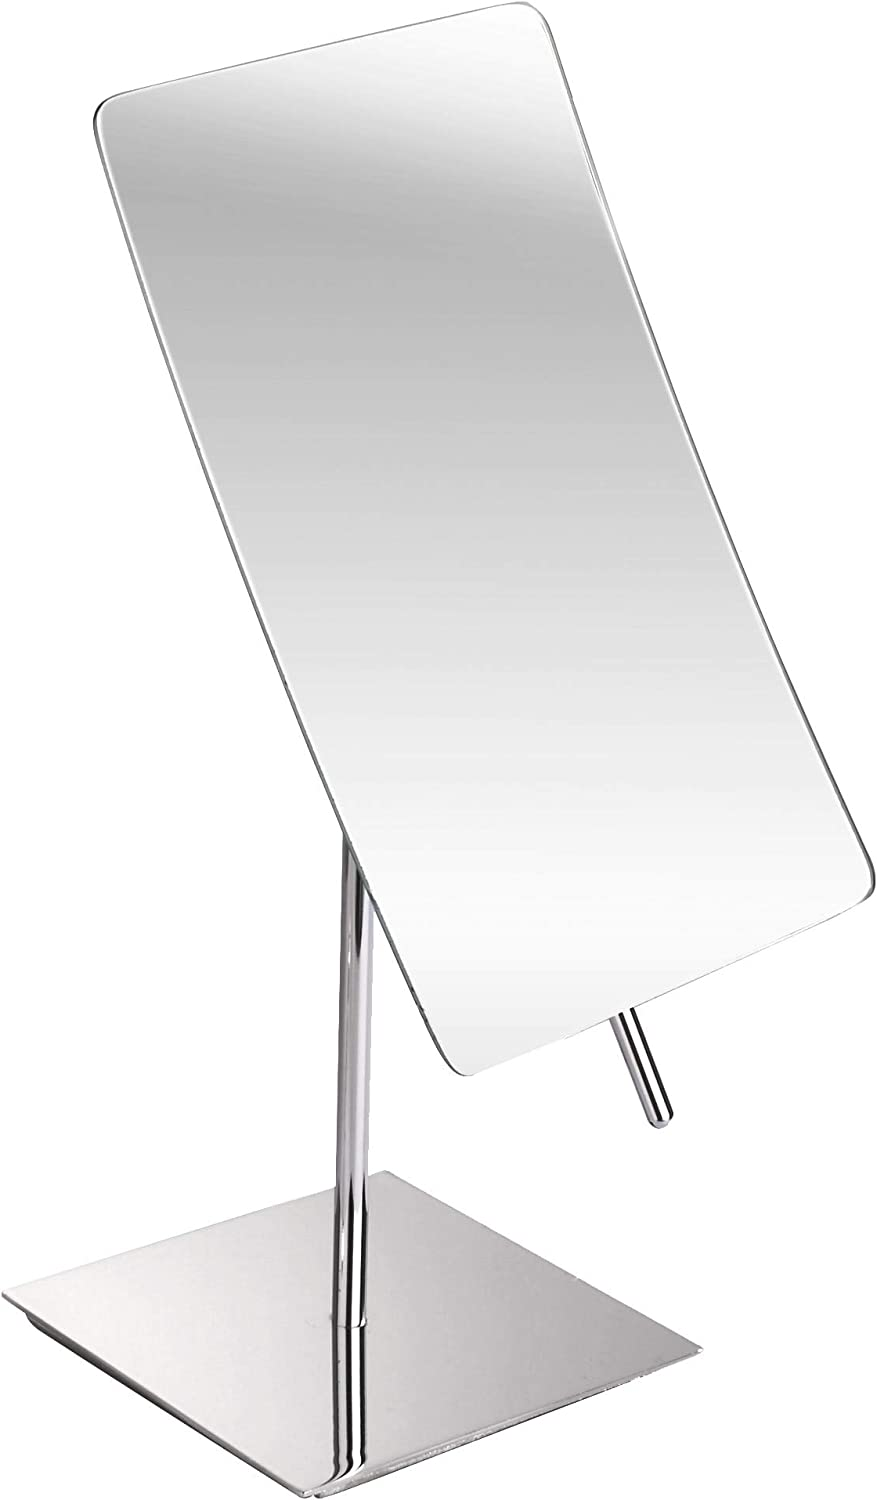 5X Magnified Premium Modern Rectangle Vanity Makeup Mirror 100% Guarantee   Portable Polished Chrome Contemporary Finish   Adjustable Easy Positioning   Best Luxury Quality Magnifying Beauty Mirror